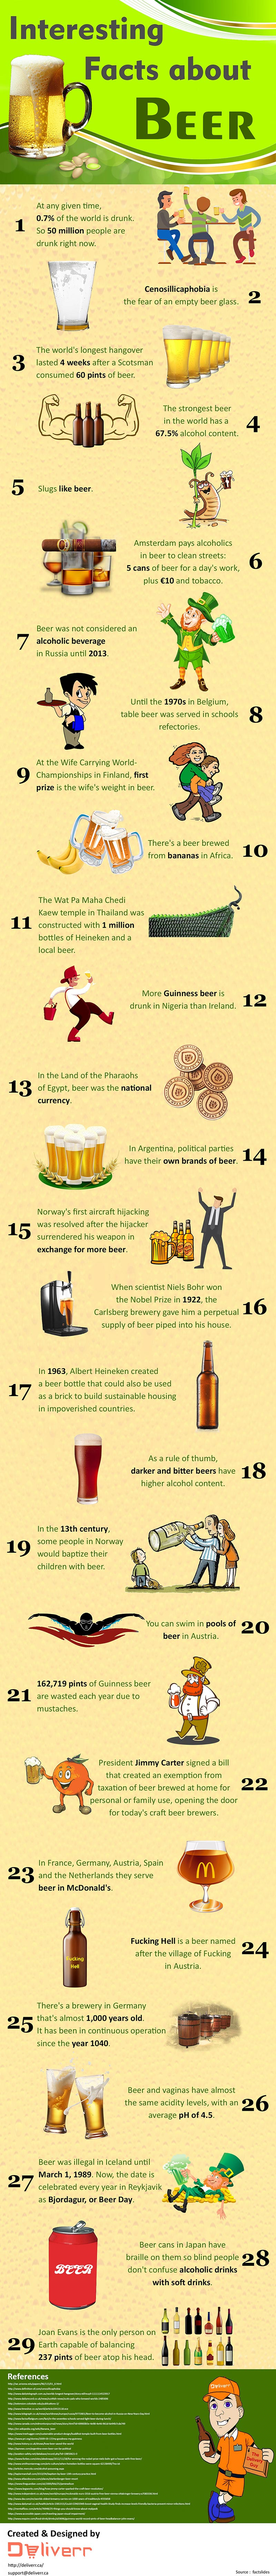 Infographic: Interesting facts about beer